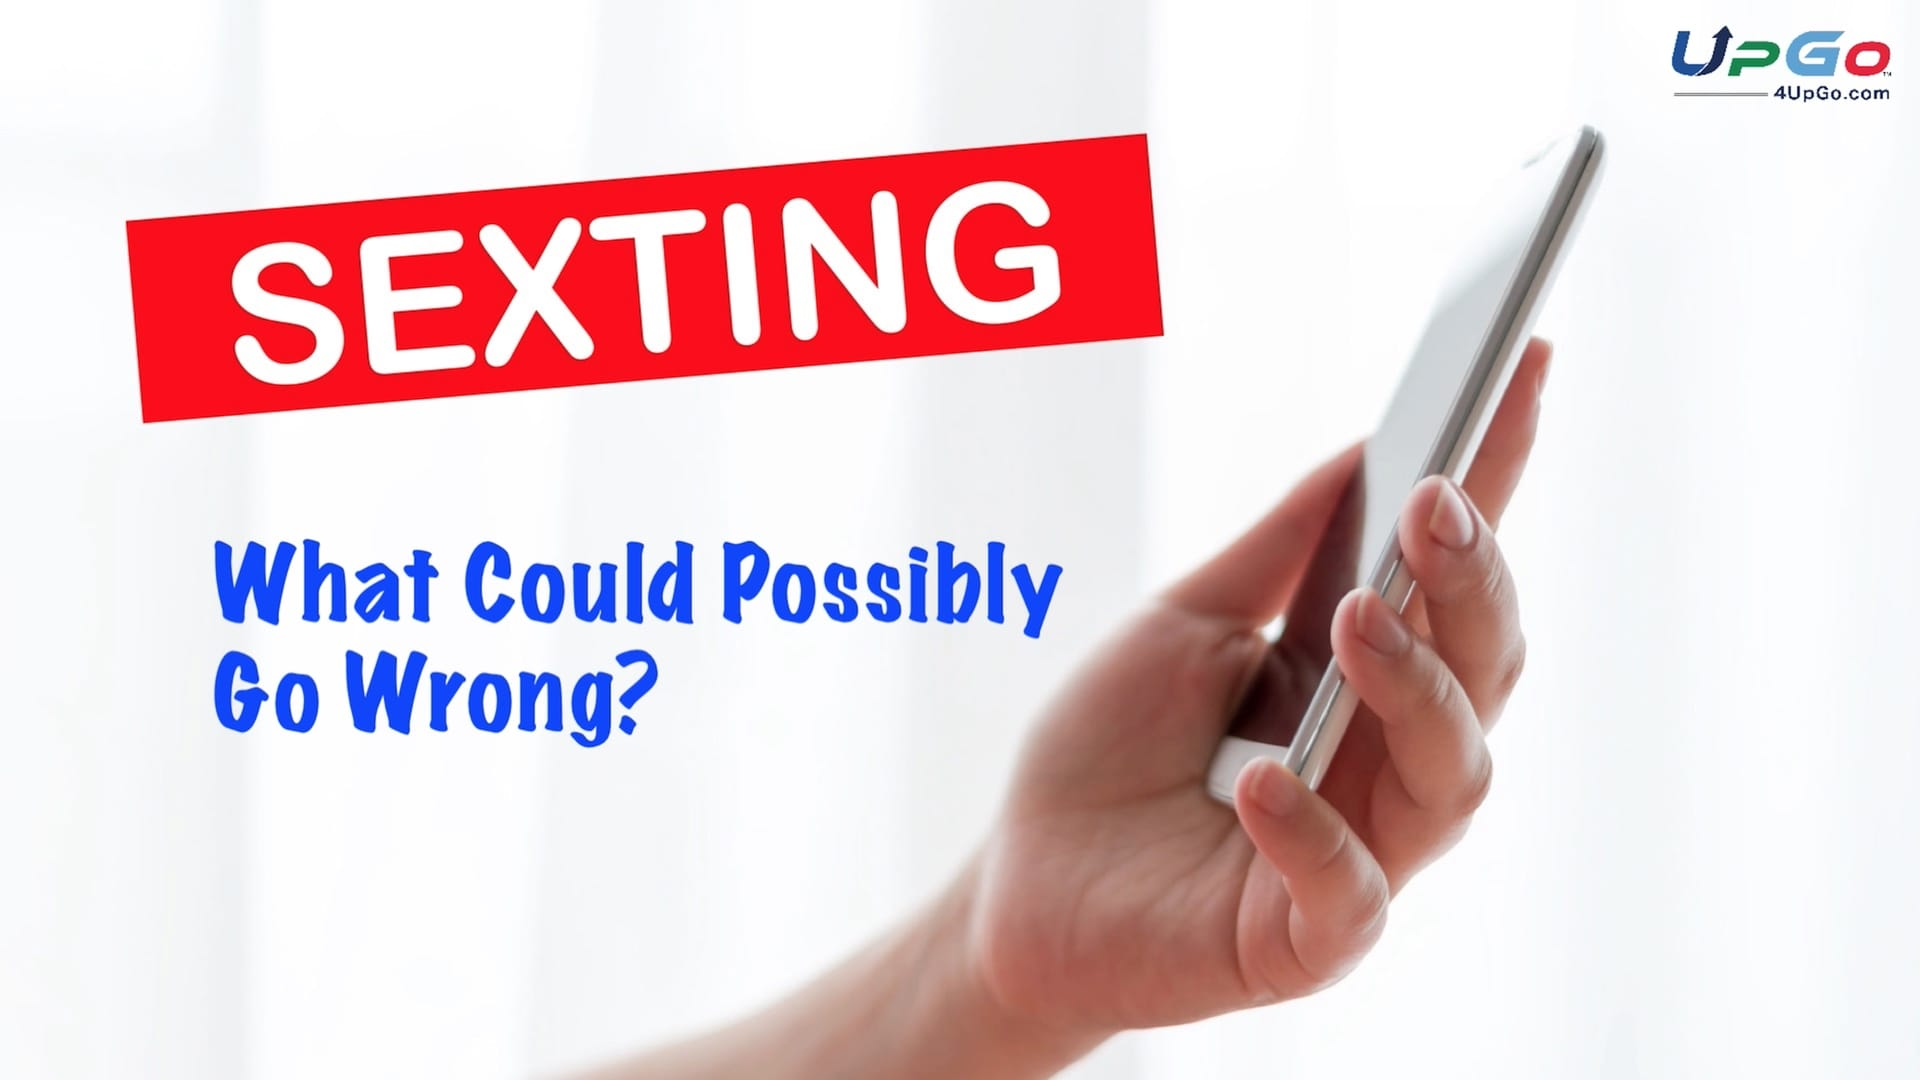 Sexting: What Could Possibly Go Wrong?